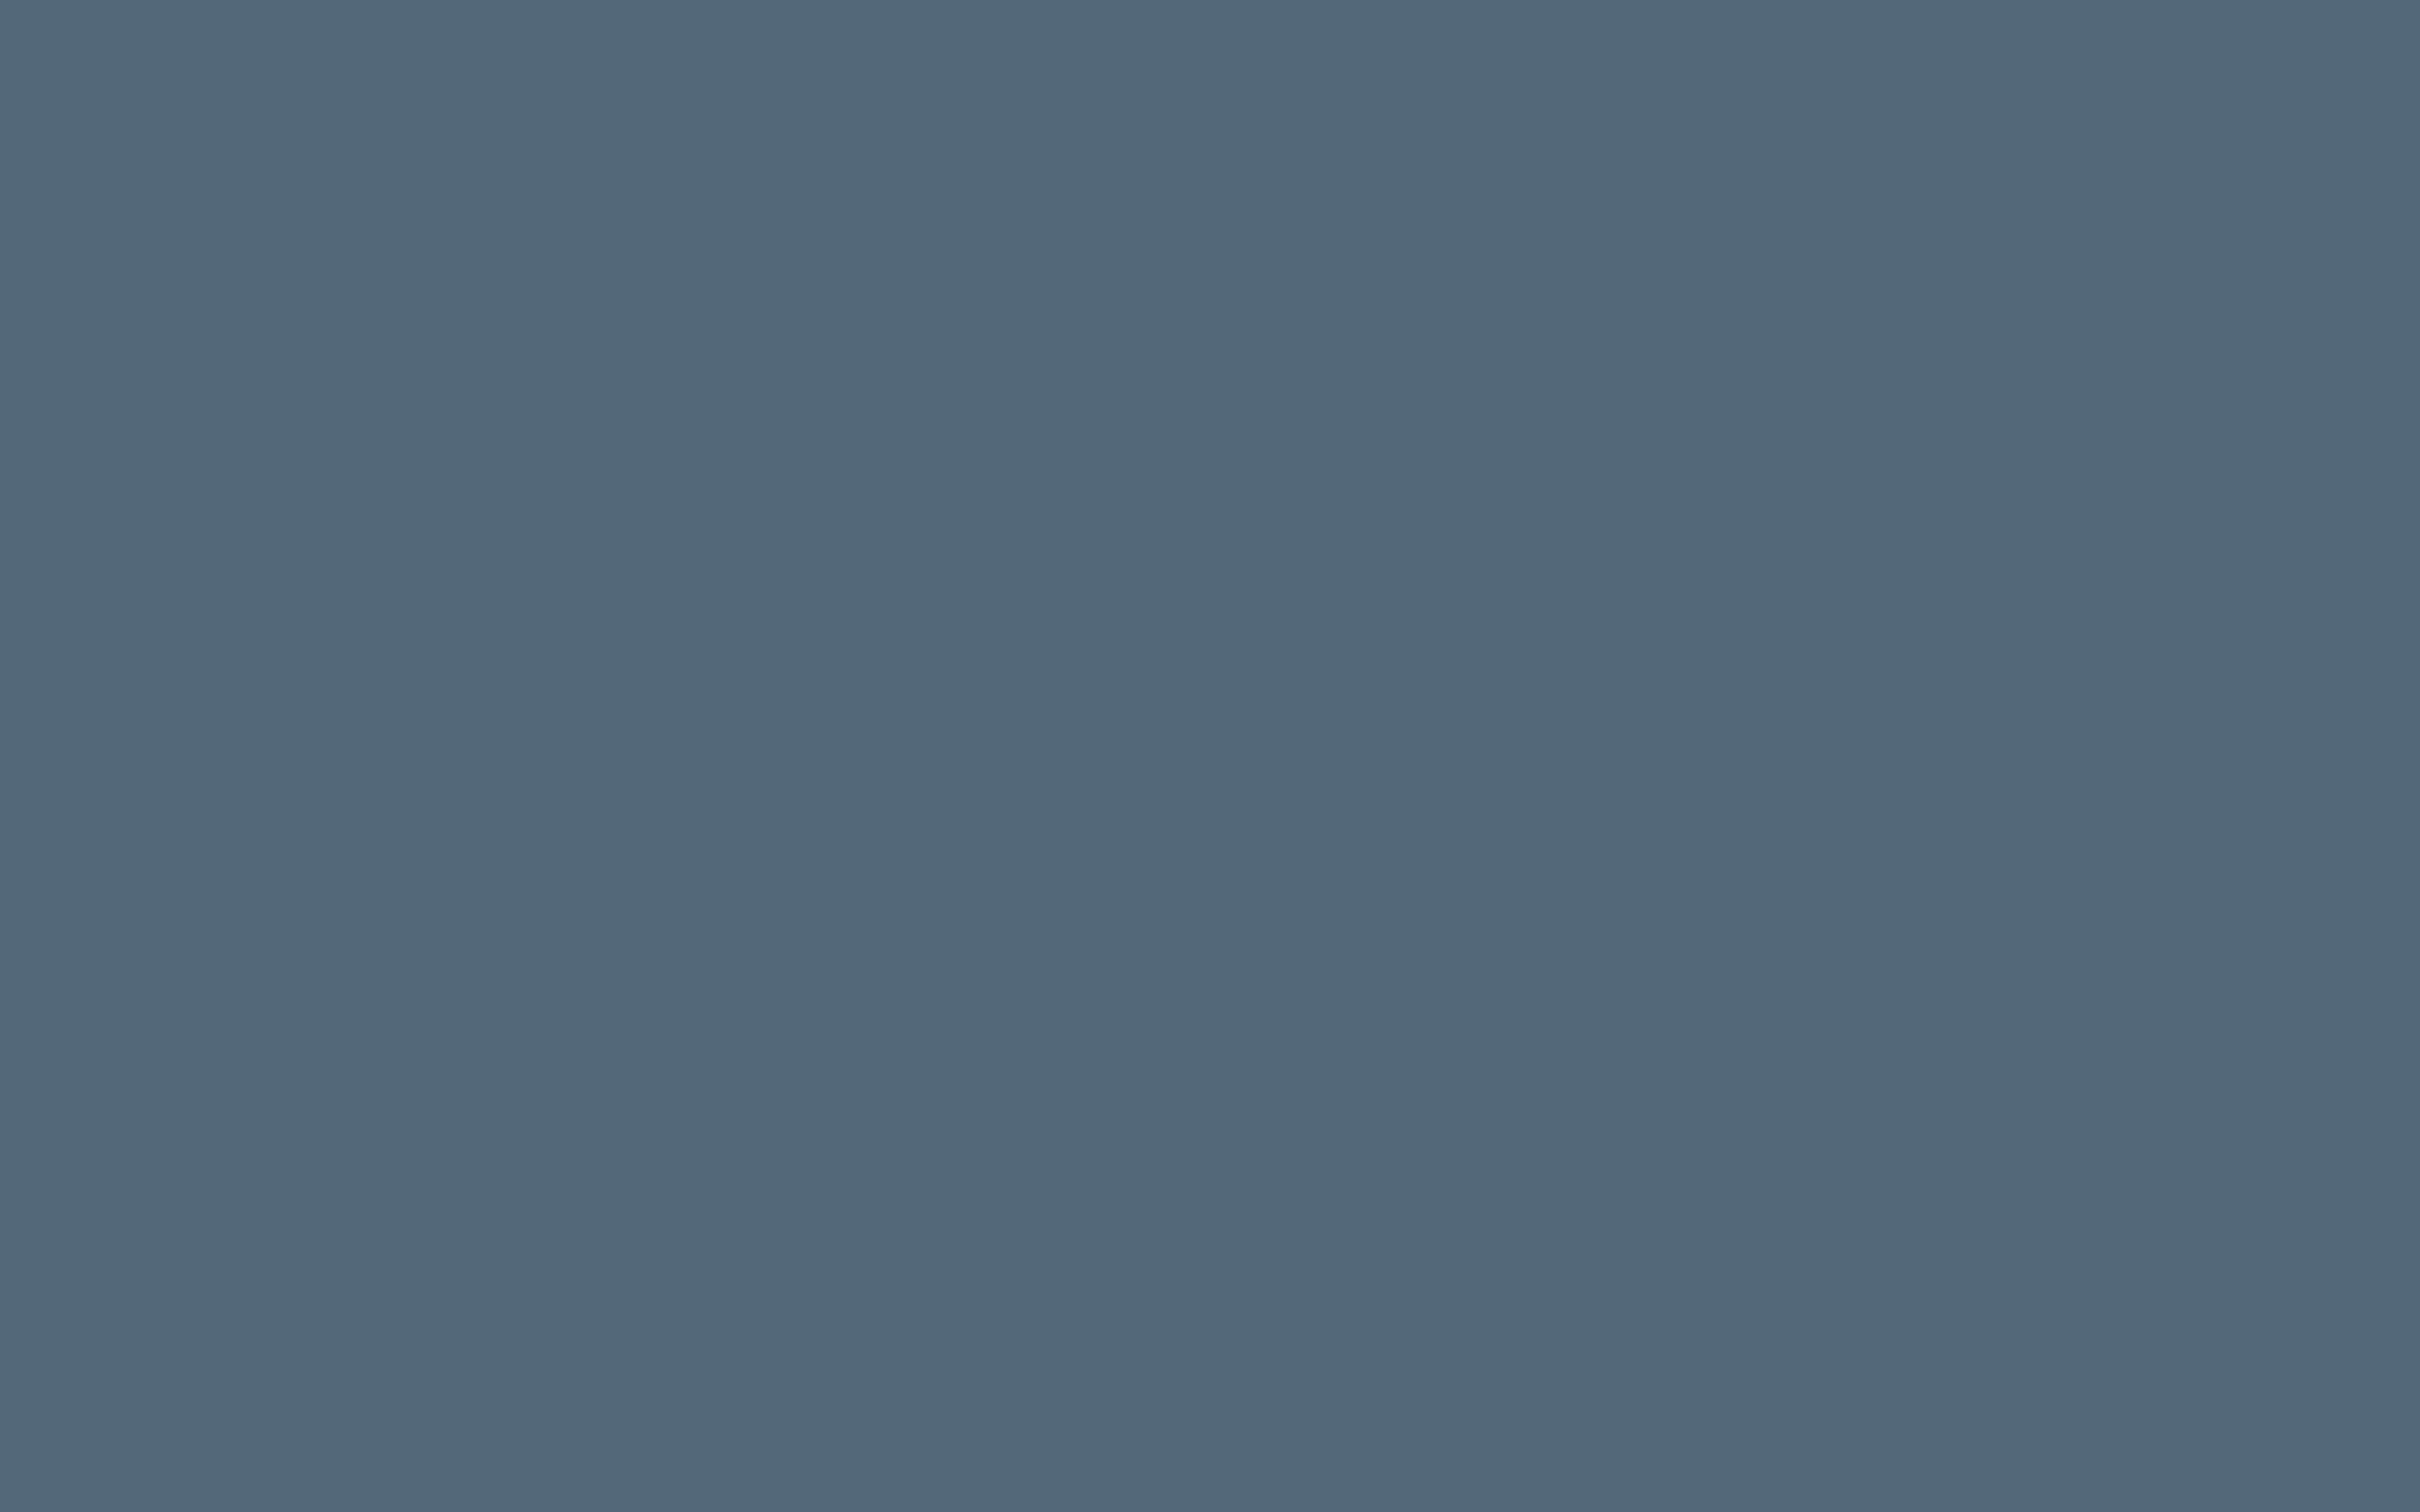 2560x1600 Dark Electric Blue Solid Color Background